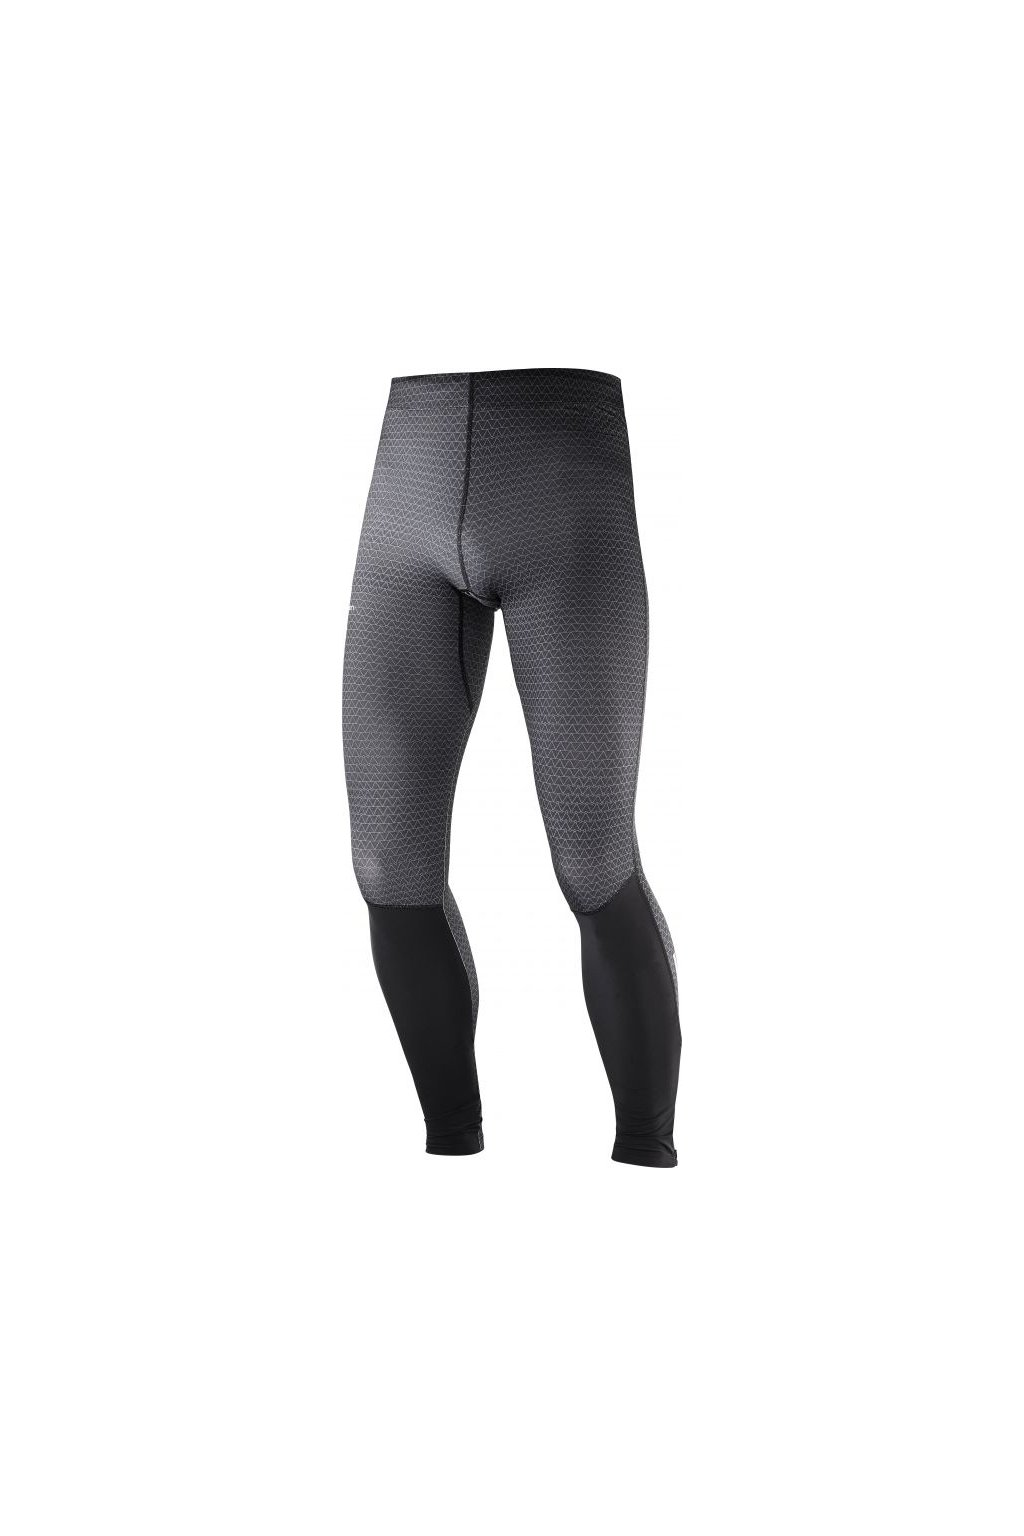 salomon agile long tight m bk forged iro 0.jpg.big